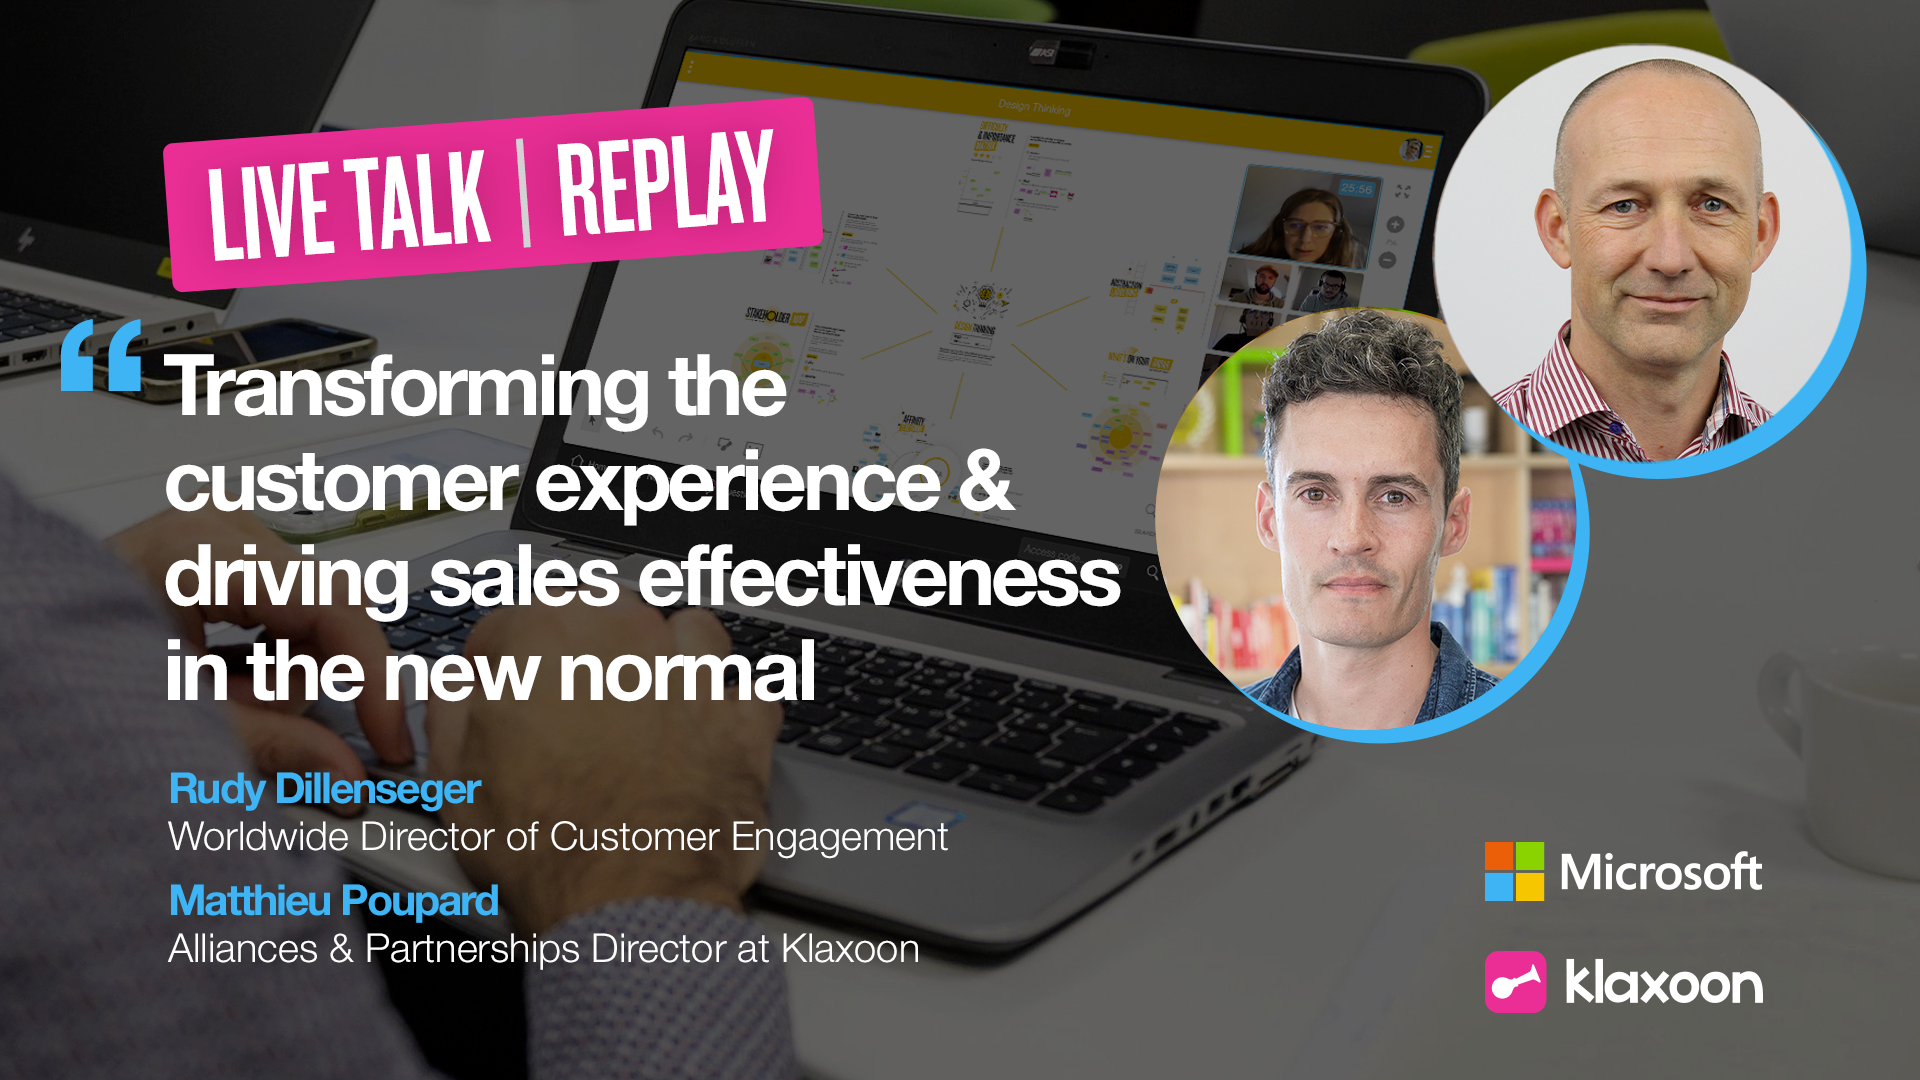 Live Transforming the customer experience and driving sales effectiveness in the new normal